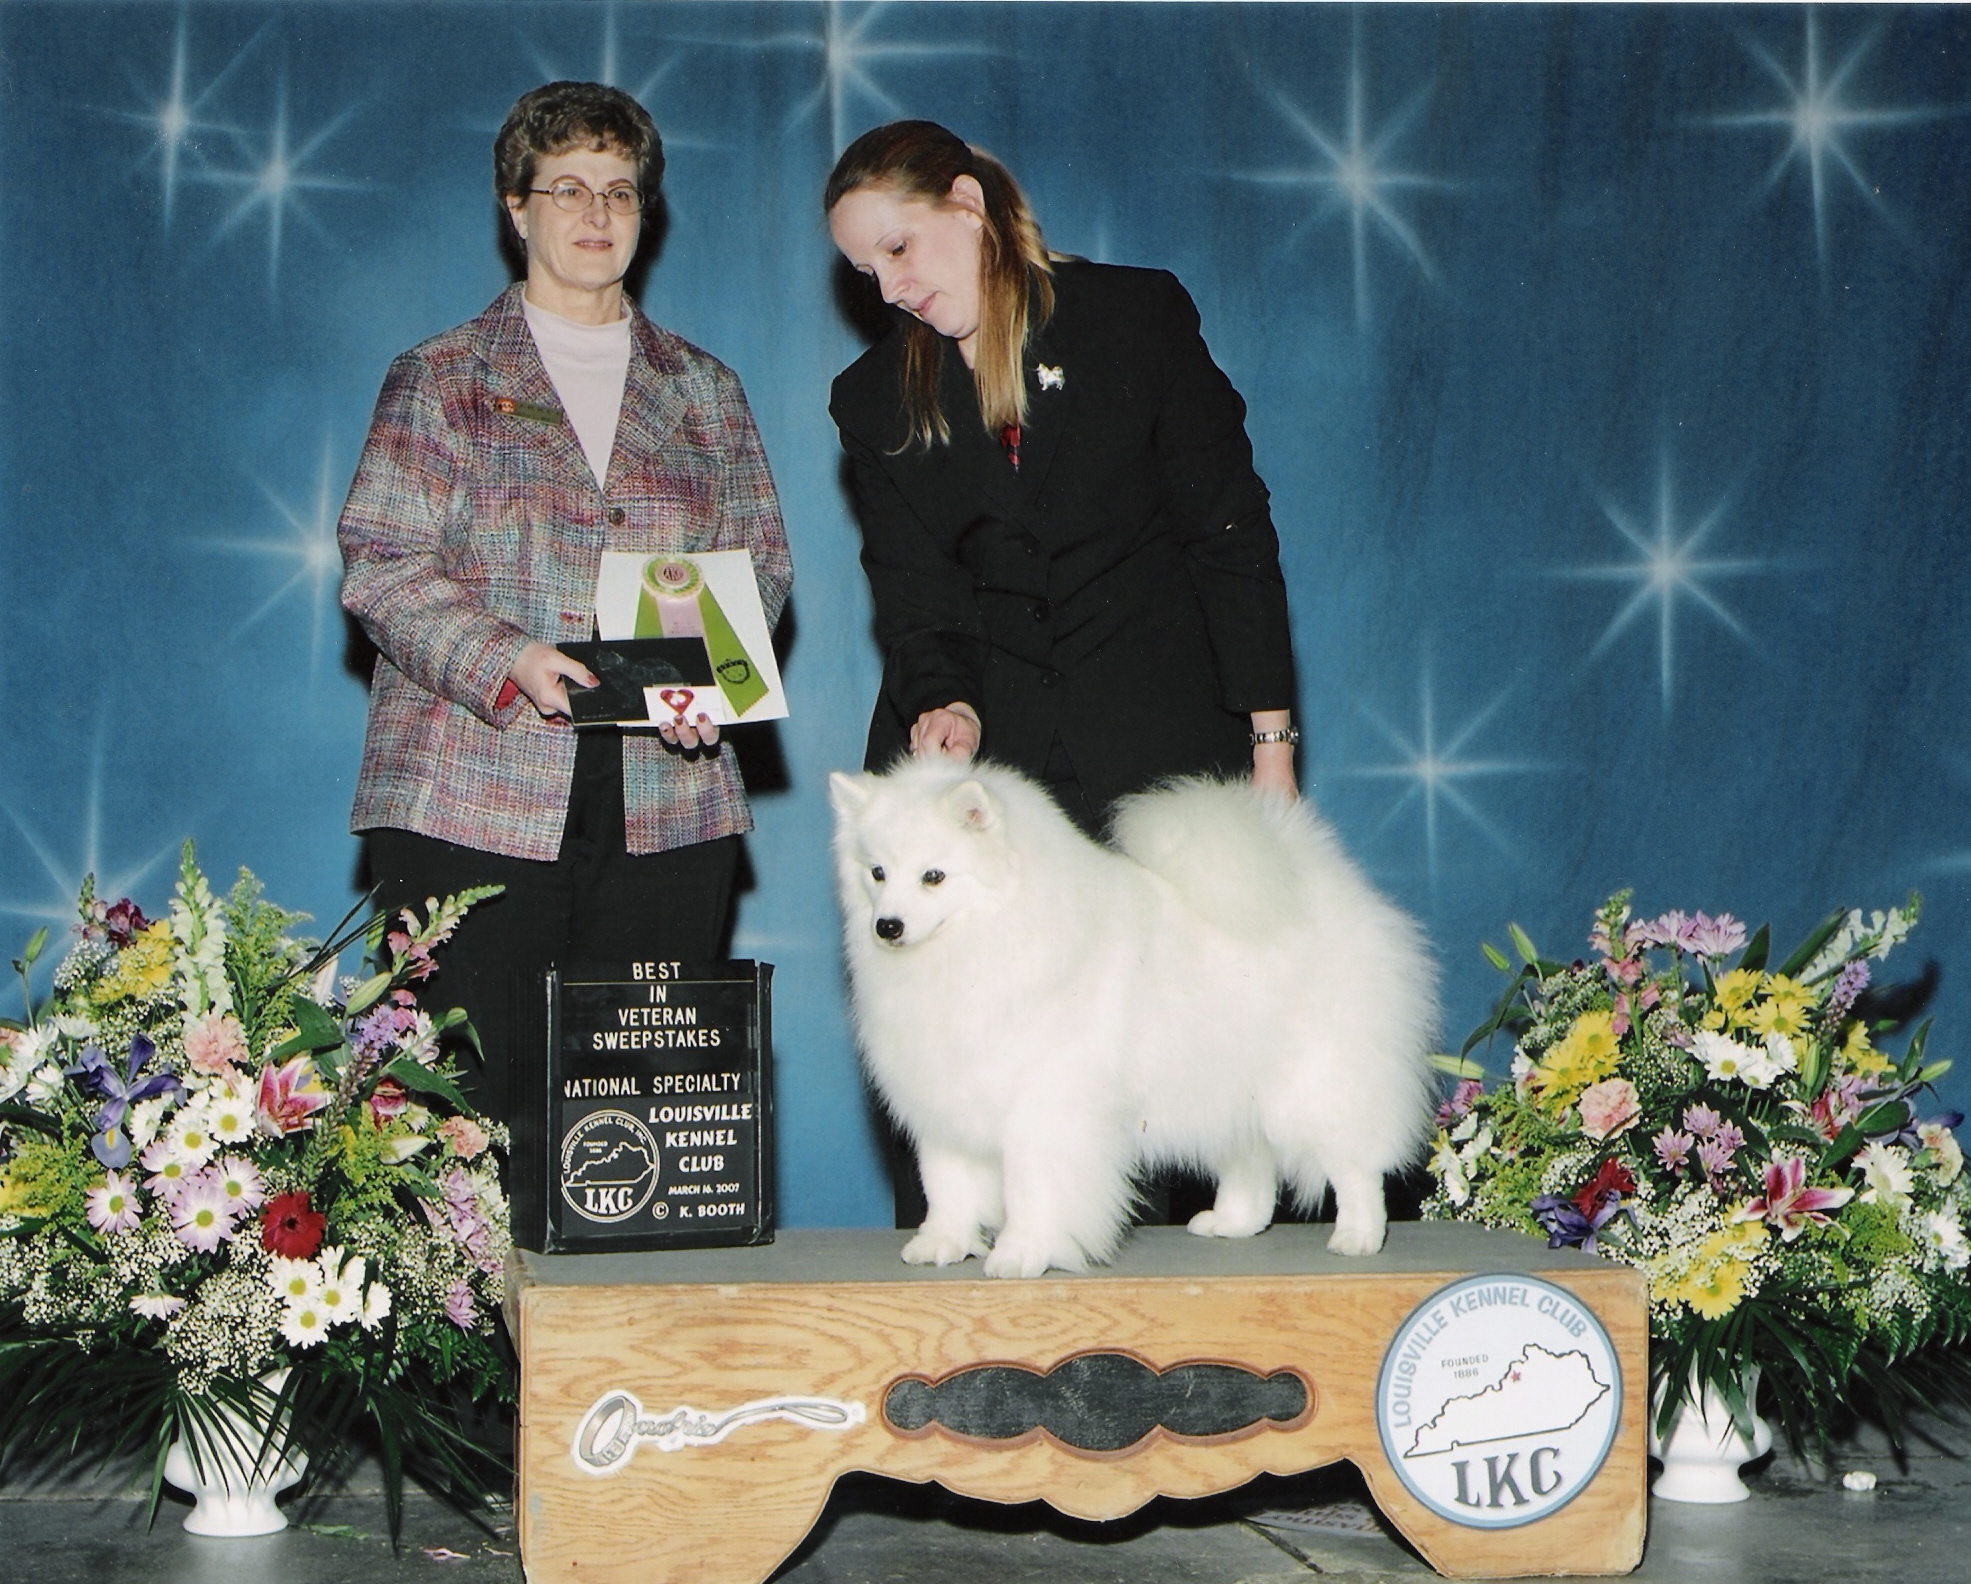 Maggie still going strong at 13 yrs Winner of Veteran Sweeps 2007 AKC National Louisville Kentucky